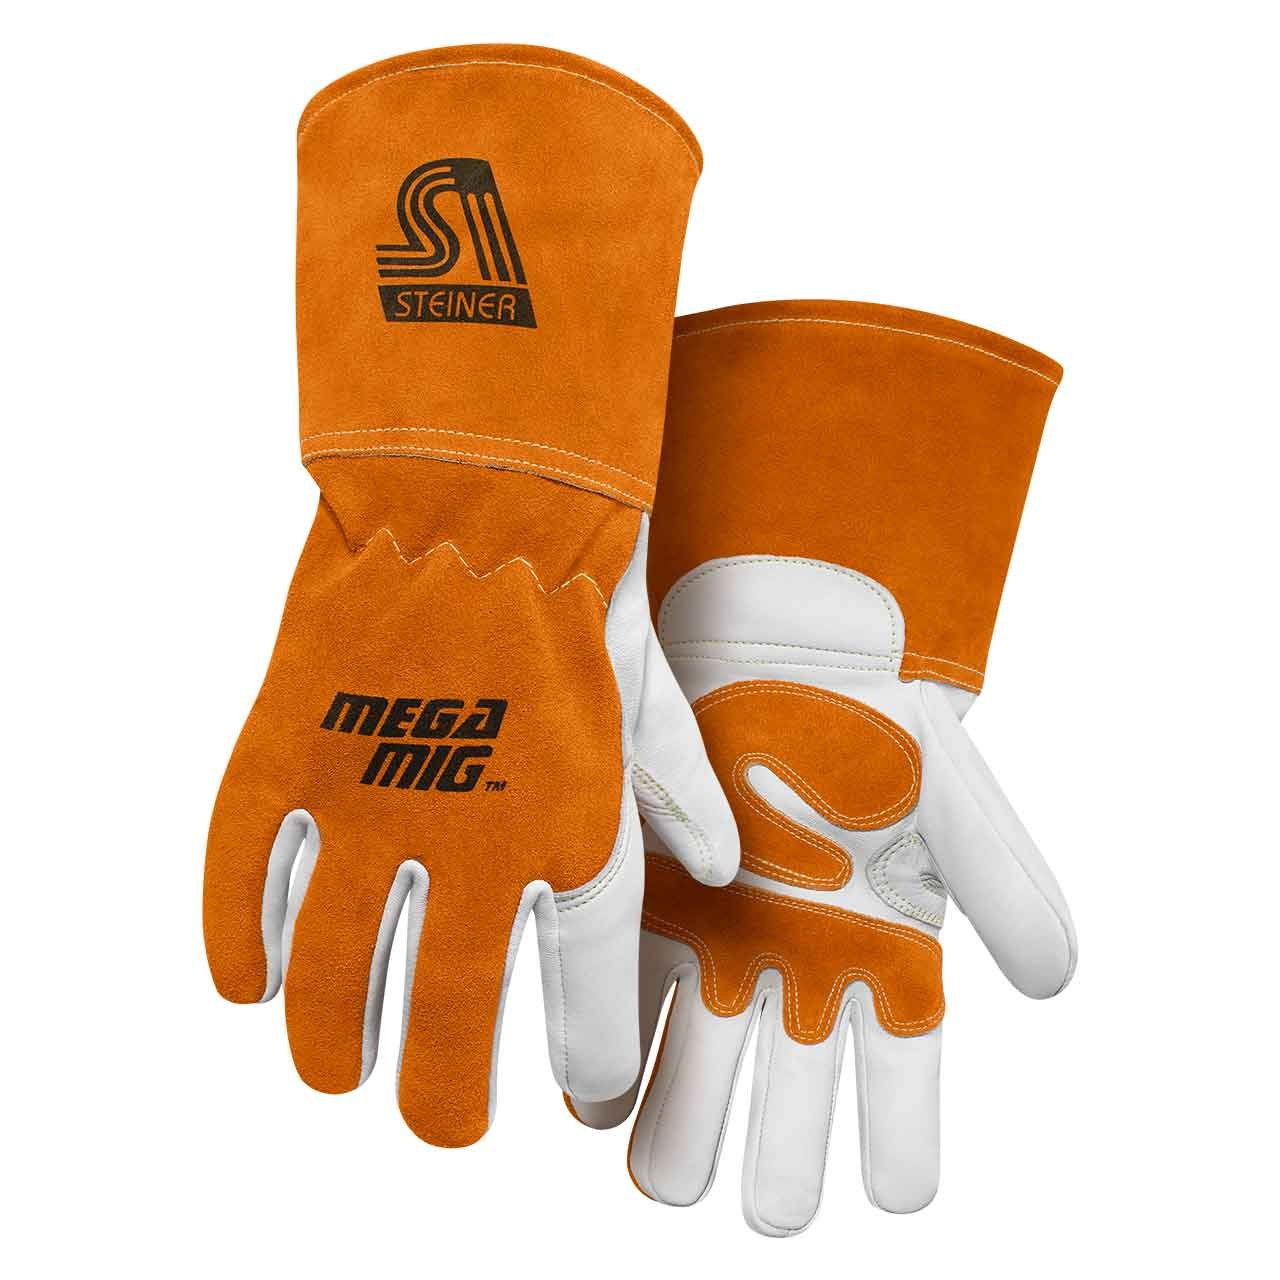 Steiner 0215-M Mega MIG Gloves, Premium Heavyweight Grain Goatskin Split Cowhide Back Palm Reinforcements, 4.5-Inch Cuff, Medium